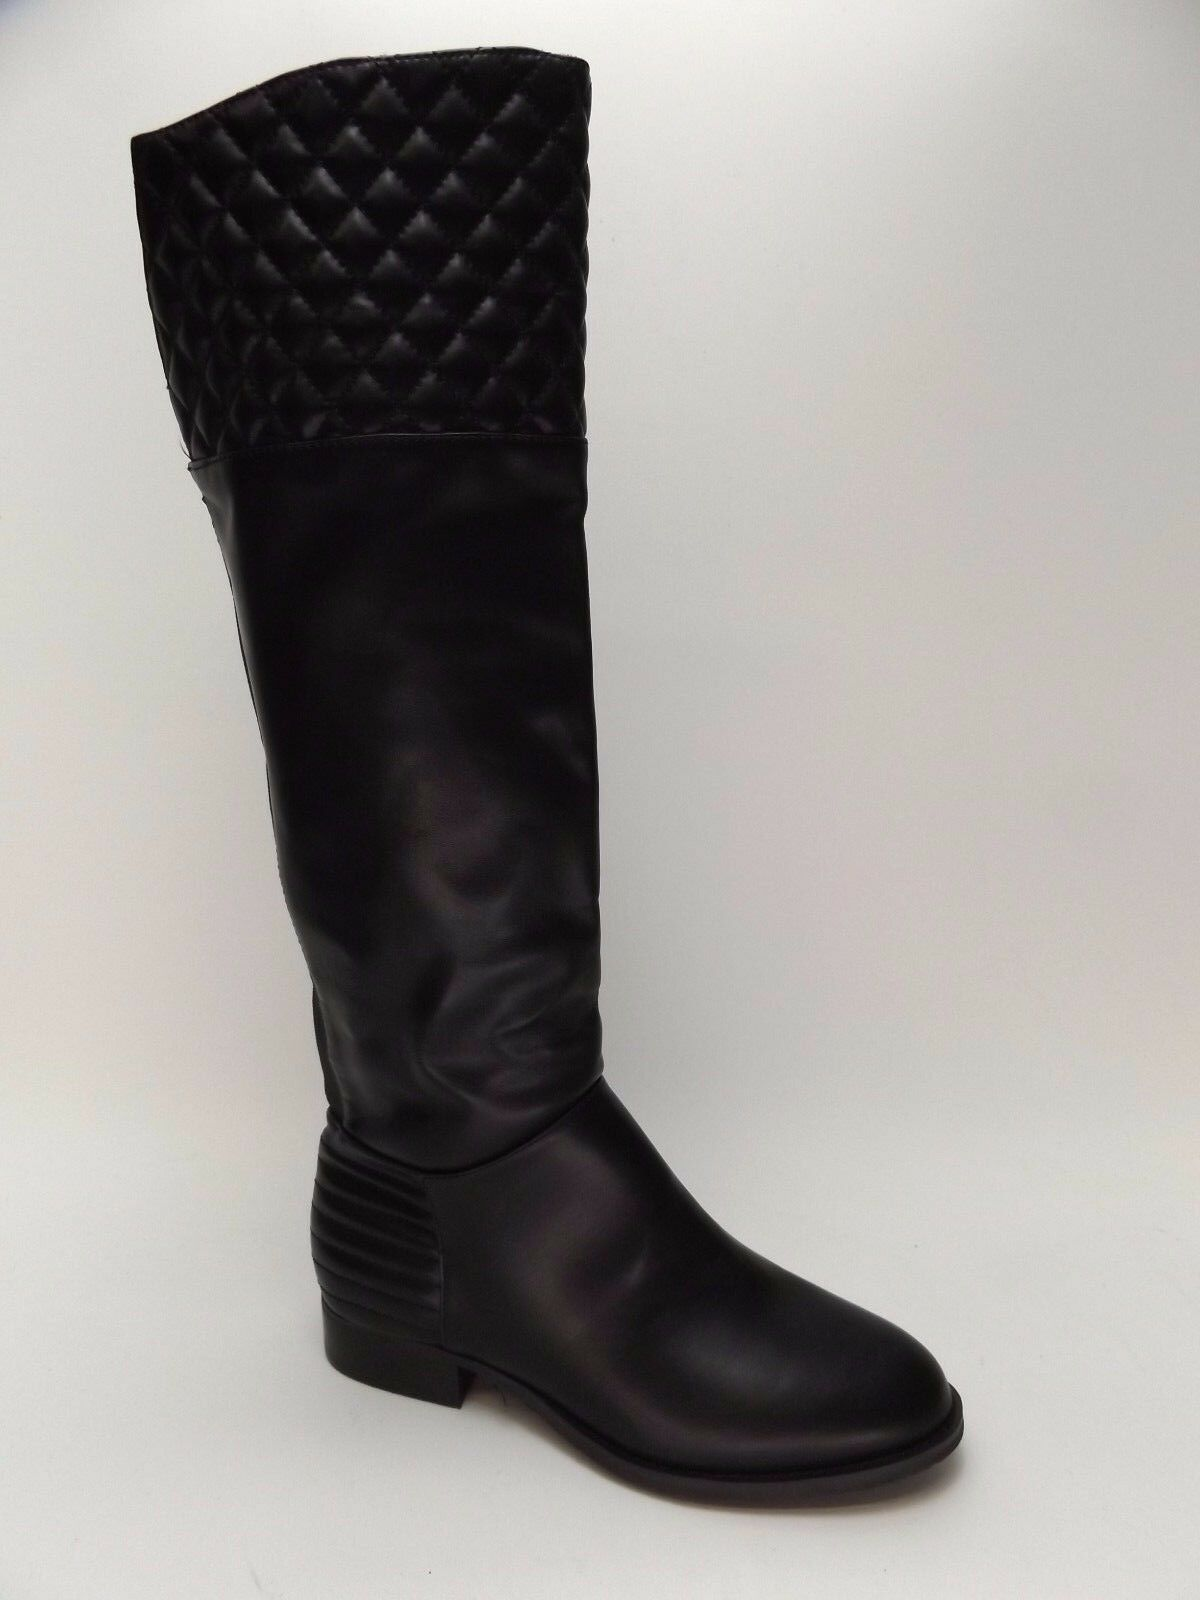 Chinese Laundry Women's Fallout Black BOOTS US SZ 6.0 M NEW DISPLAY-- D2368